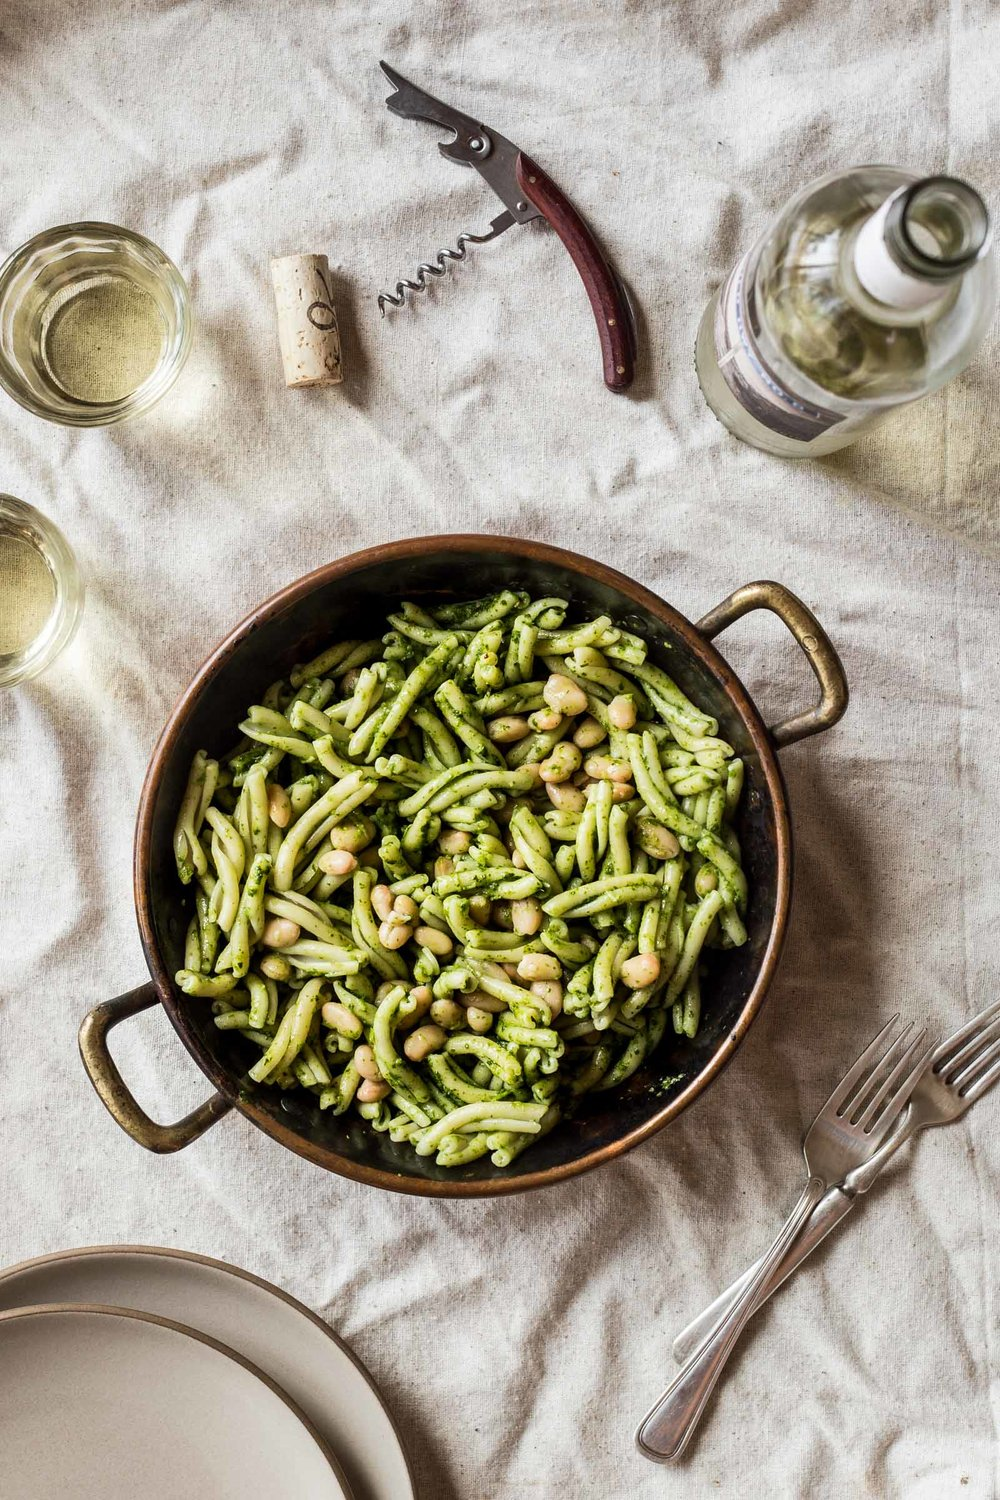 S wiss Chard Pesto Pasta with White Beans and Almonds